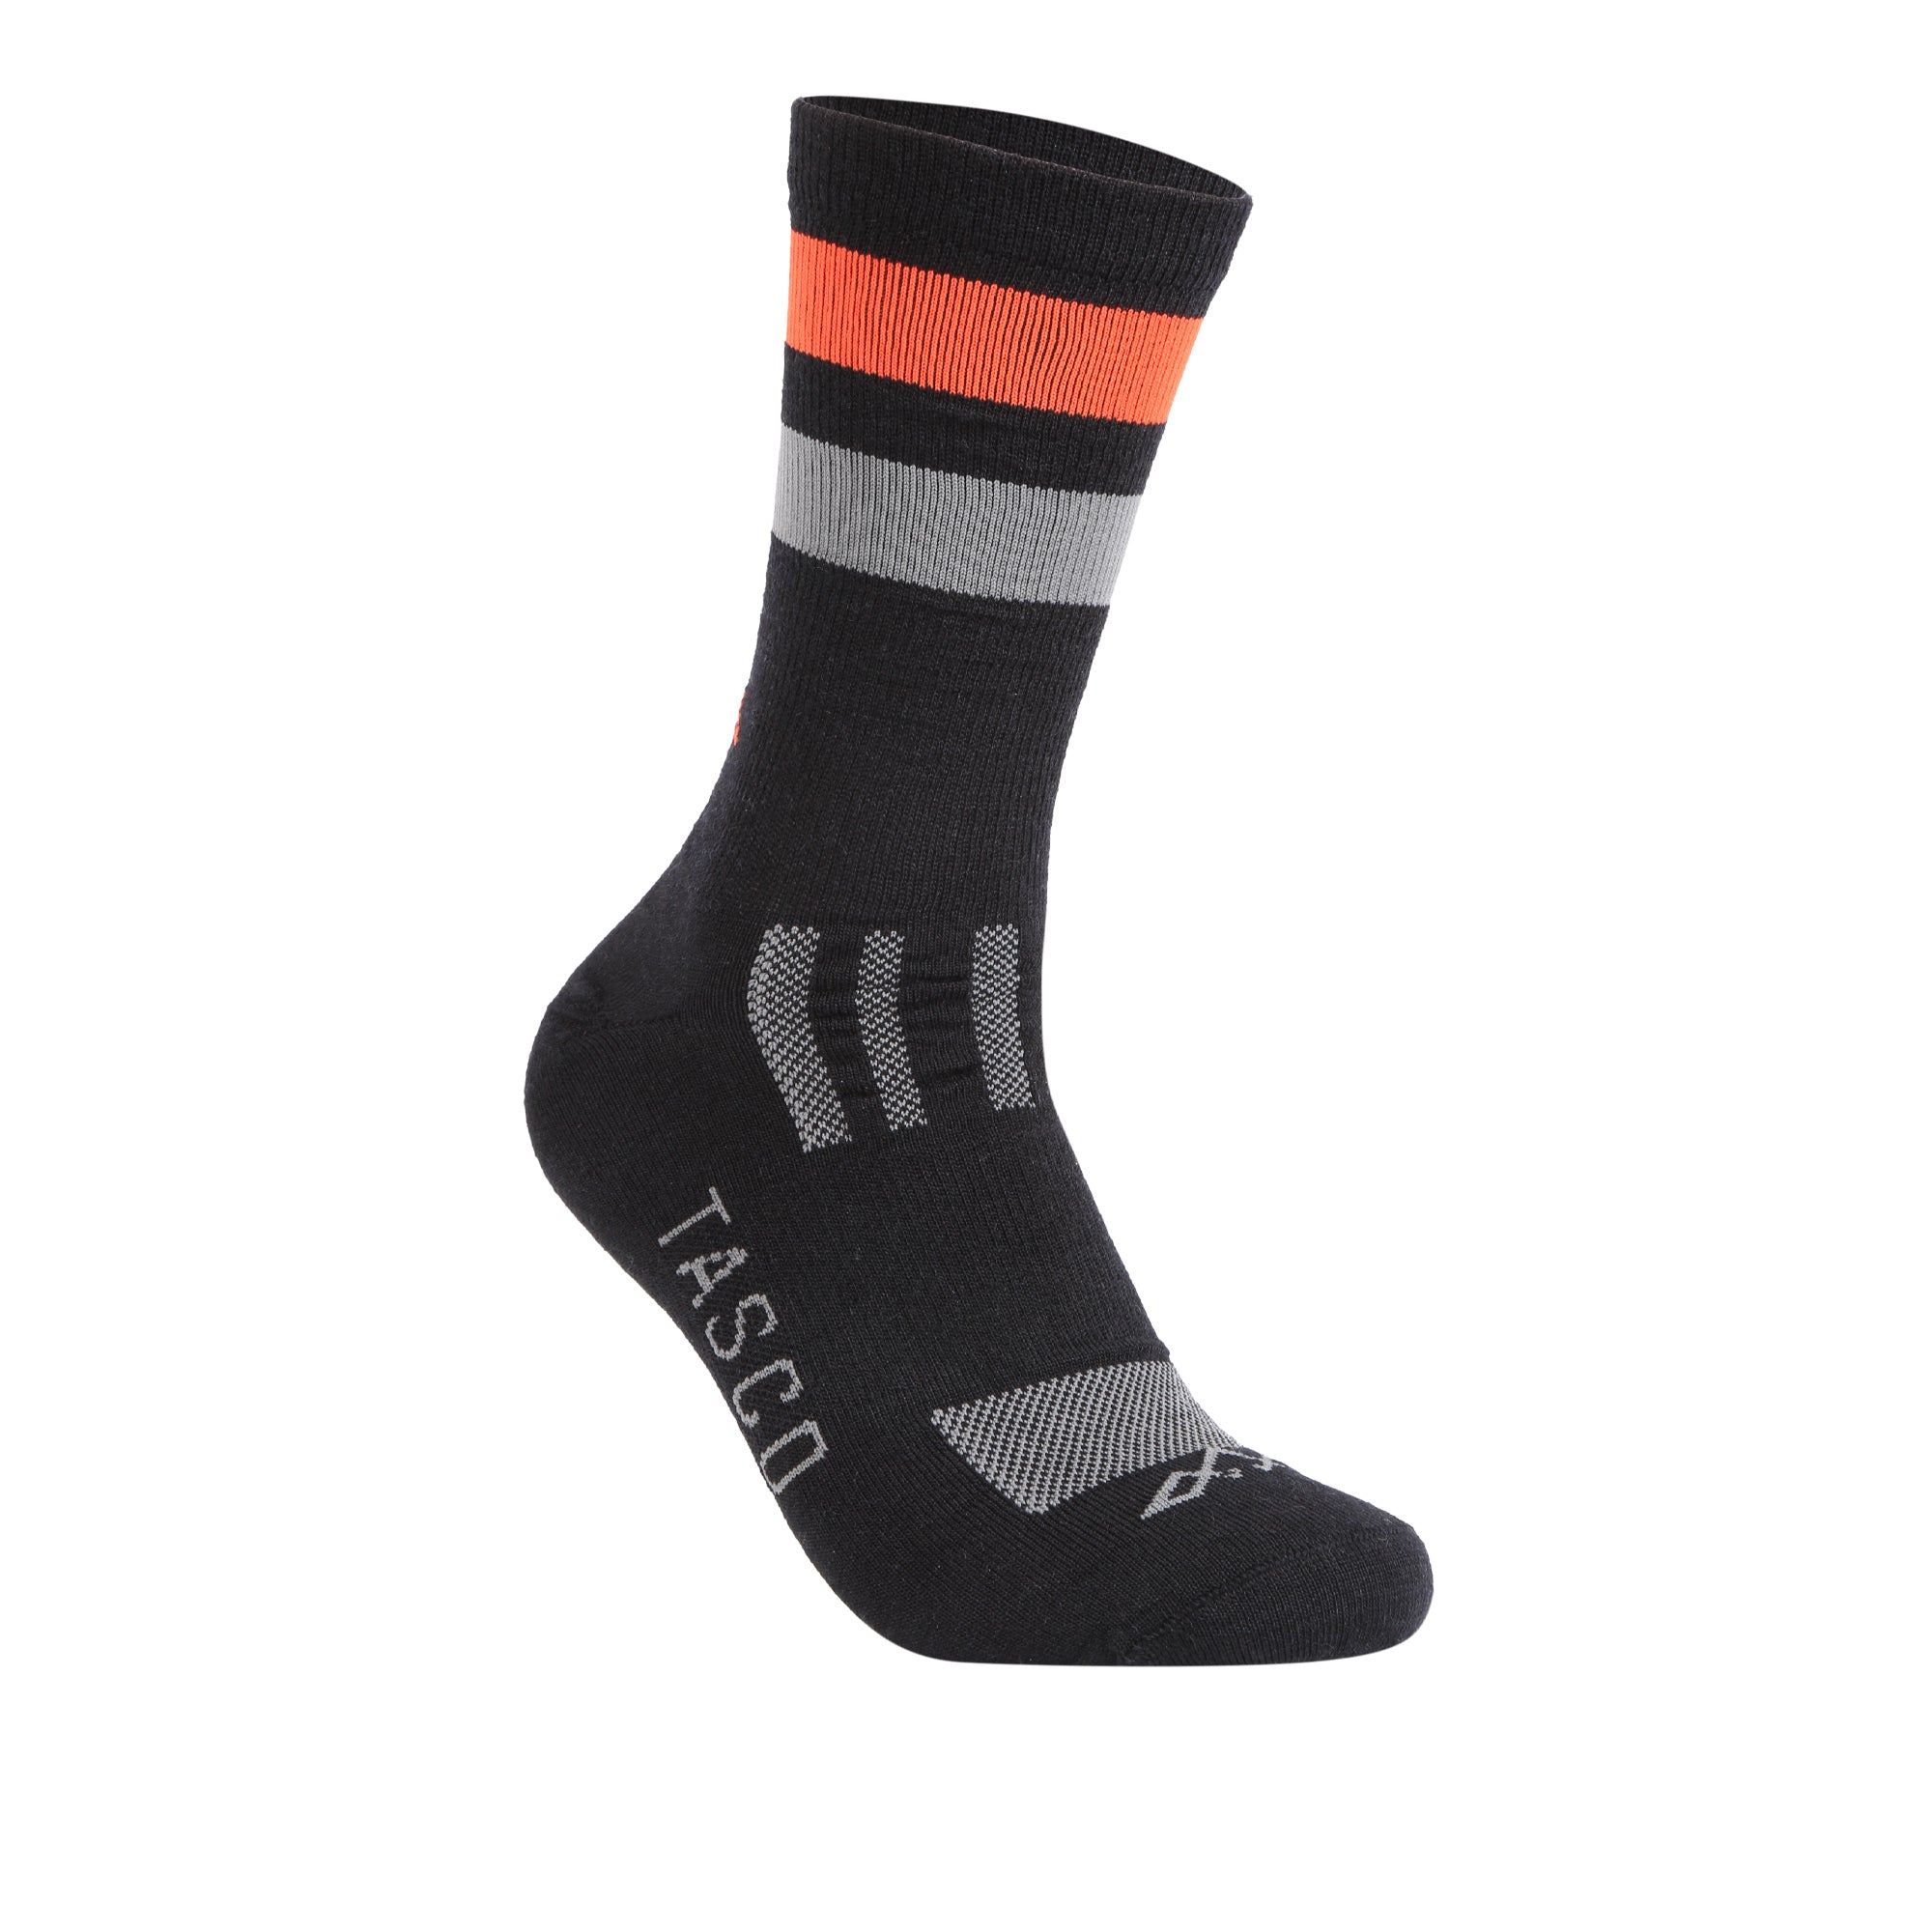 Dawn Patrol Merino Wool Classic - Black / Orange